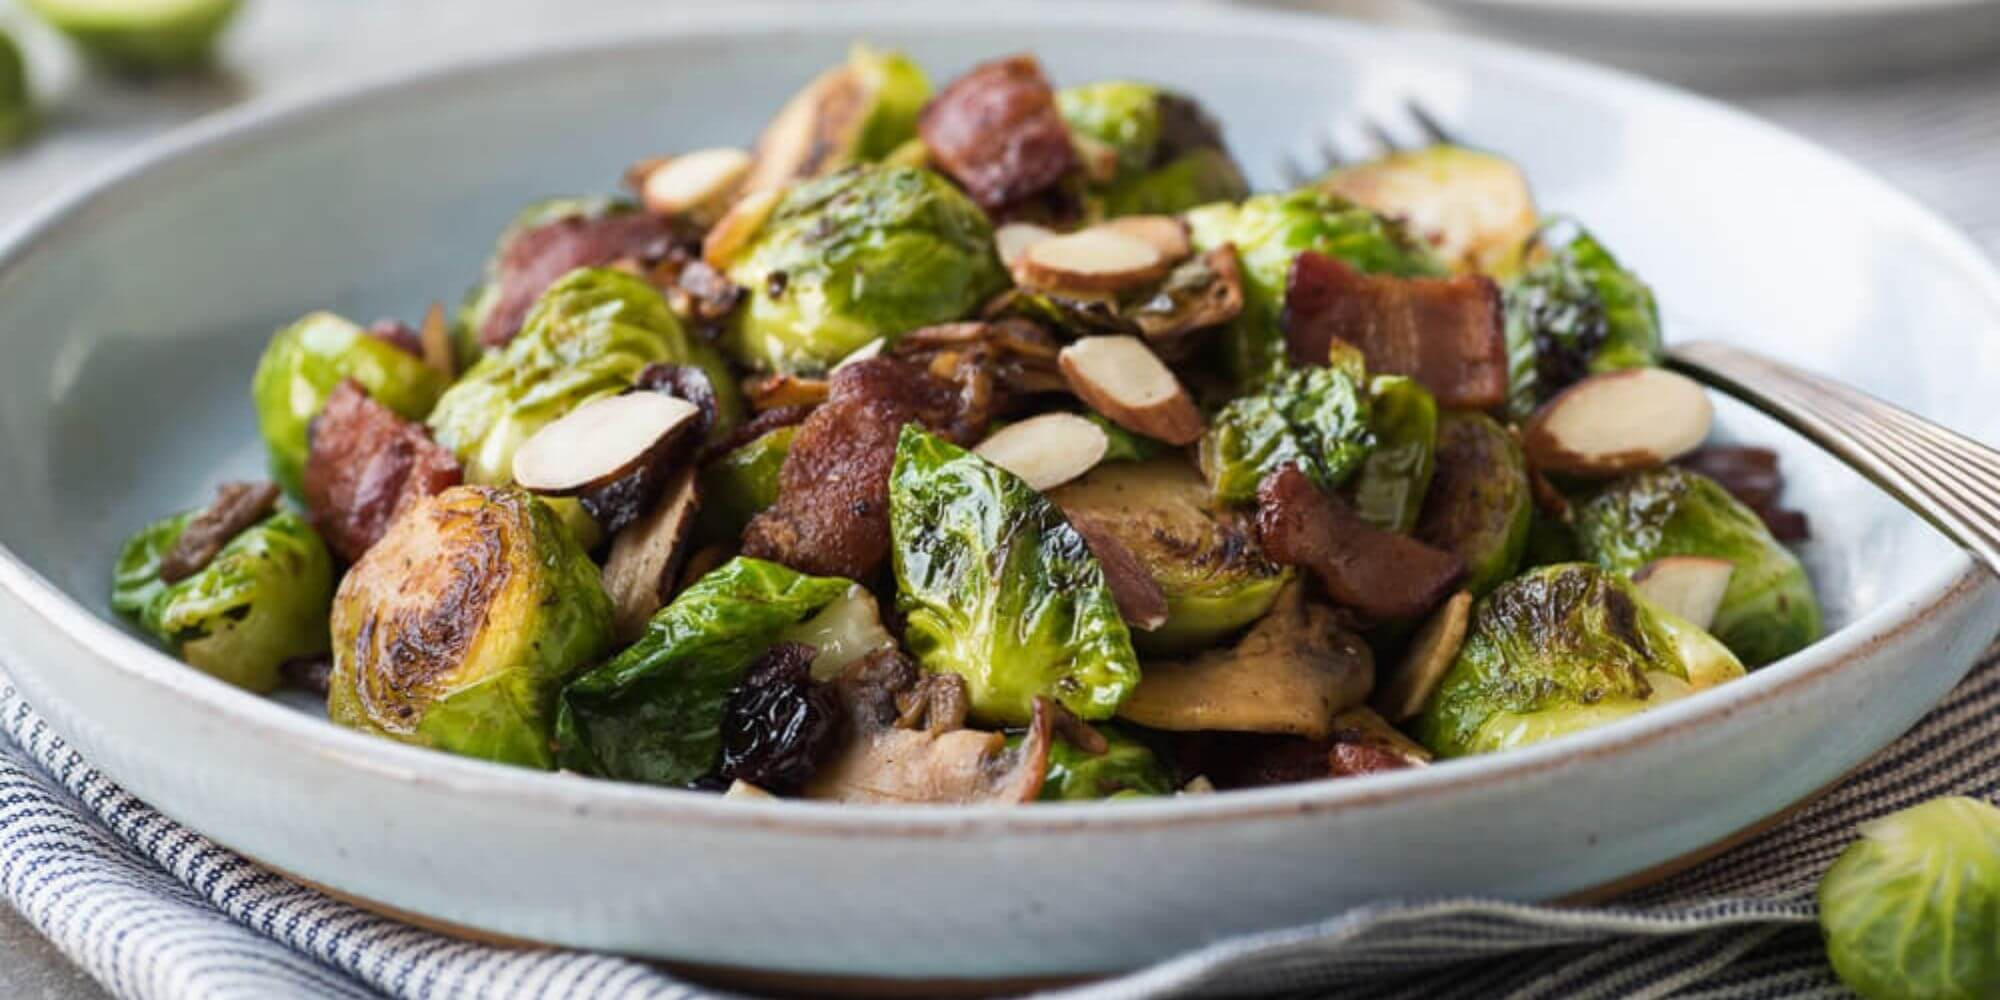 Bacon and brussels sprout hash in a gray bowl with a fork sitting on top of a napkin.